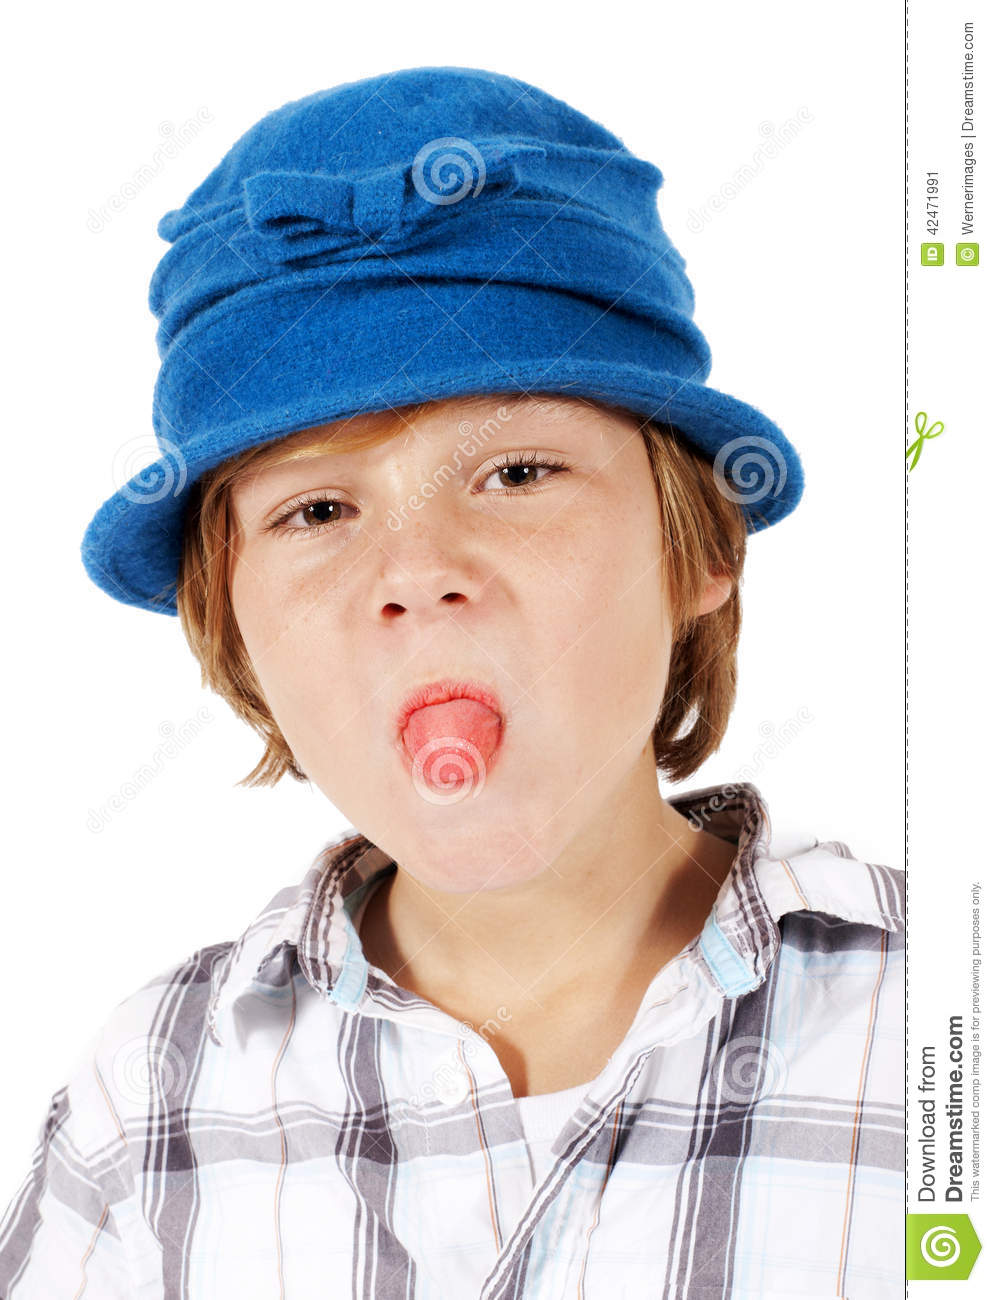 Portrait of a blond boy wearing a silly blue hat and sticking his tongue out 2c99007be73